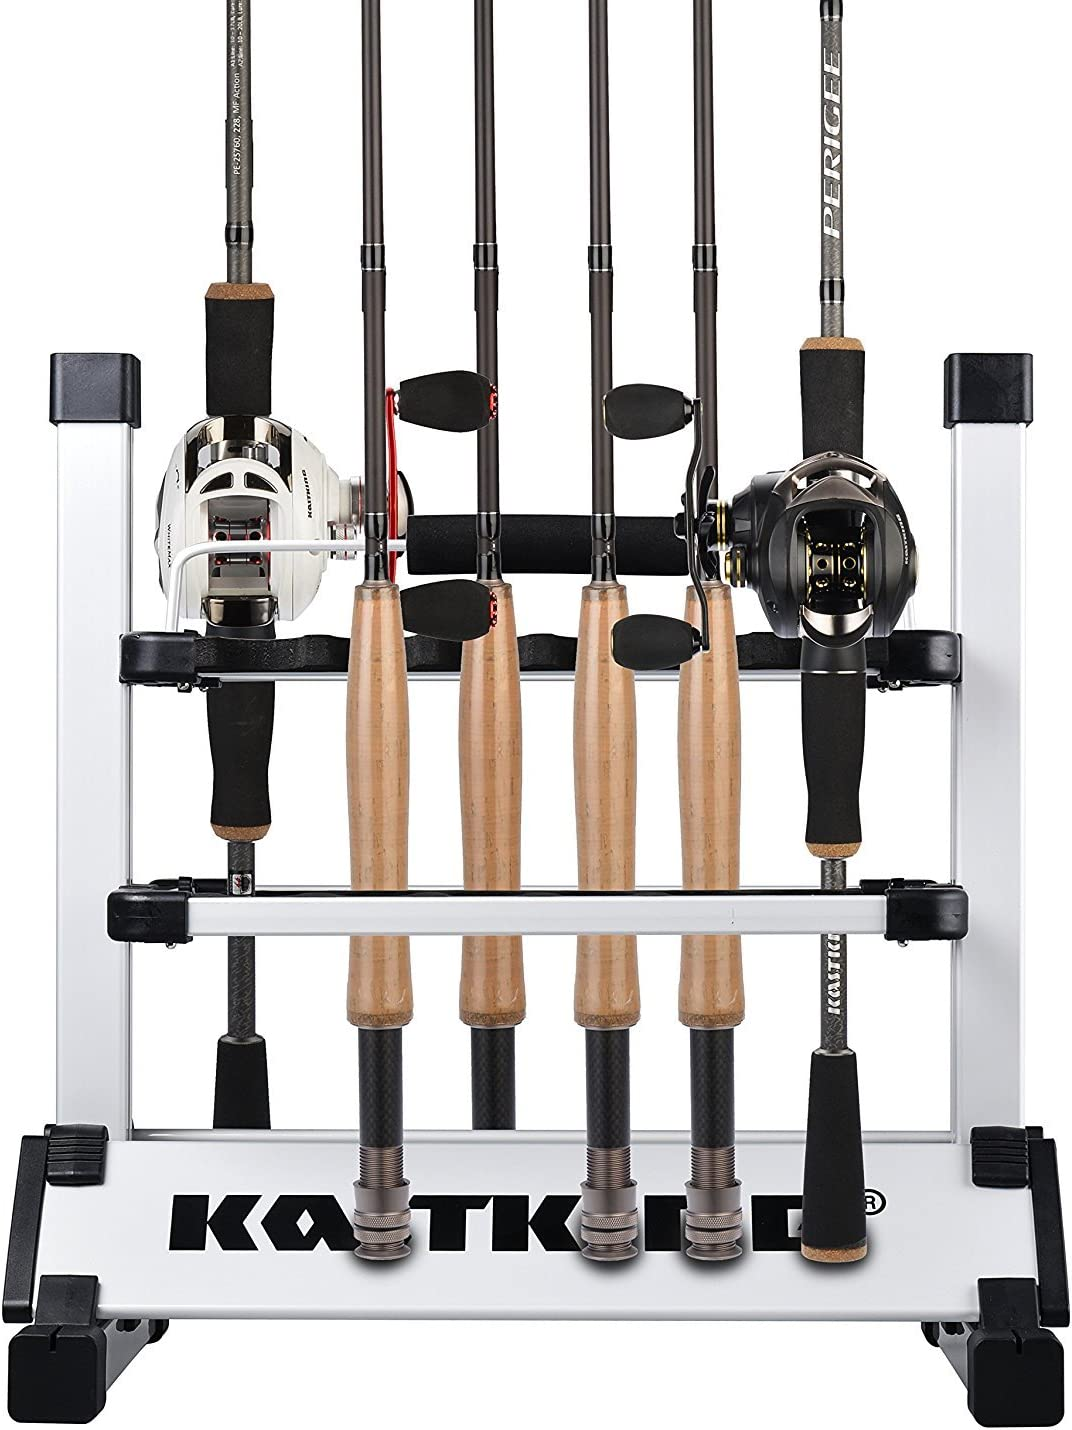 How to Protect Your Fishing Rod Cork Handles | Fishing Pole Care KastKing